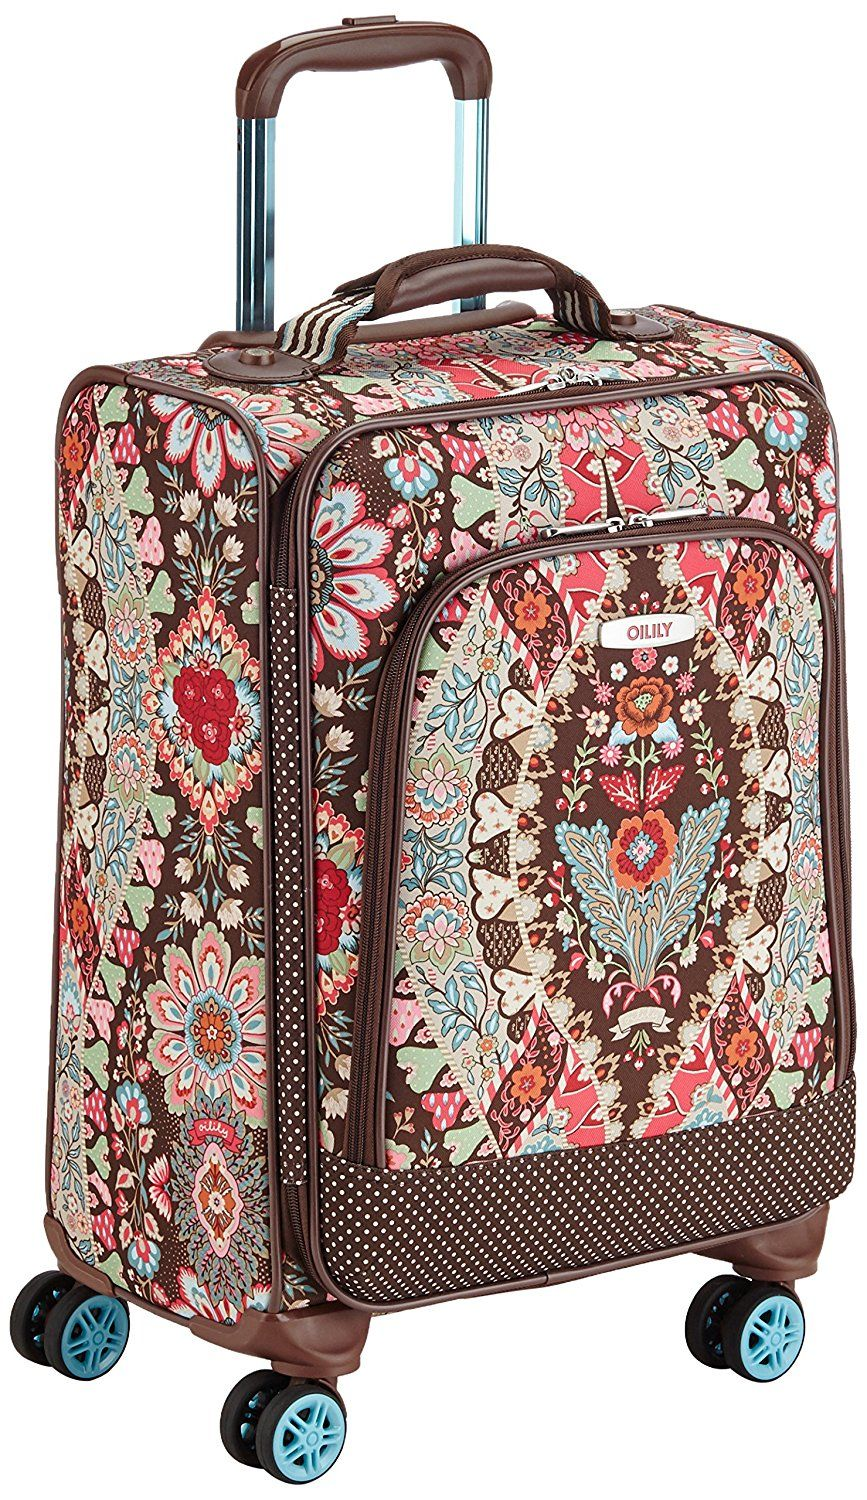 Handgepäck Trolly Oilily Travel Trolley Small Spinner Additional Details At The